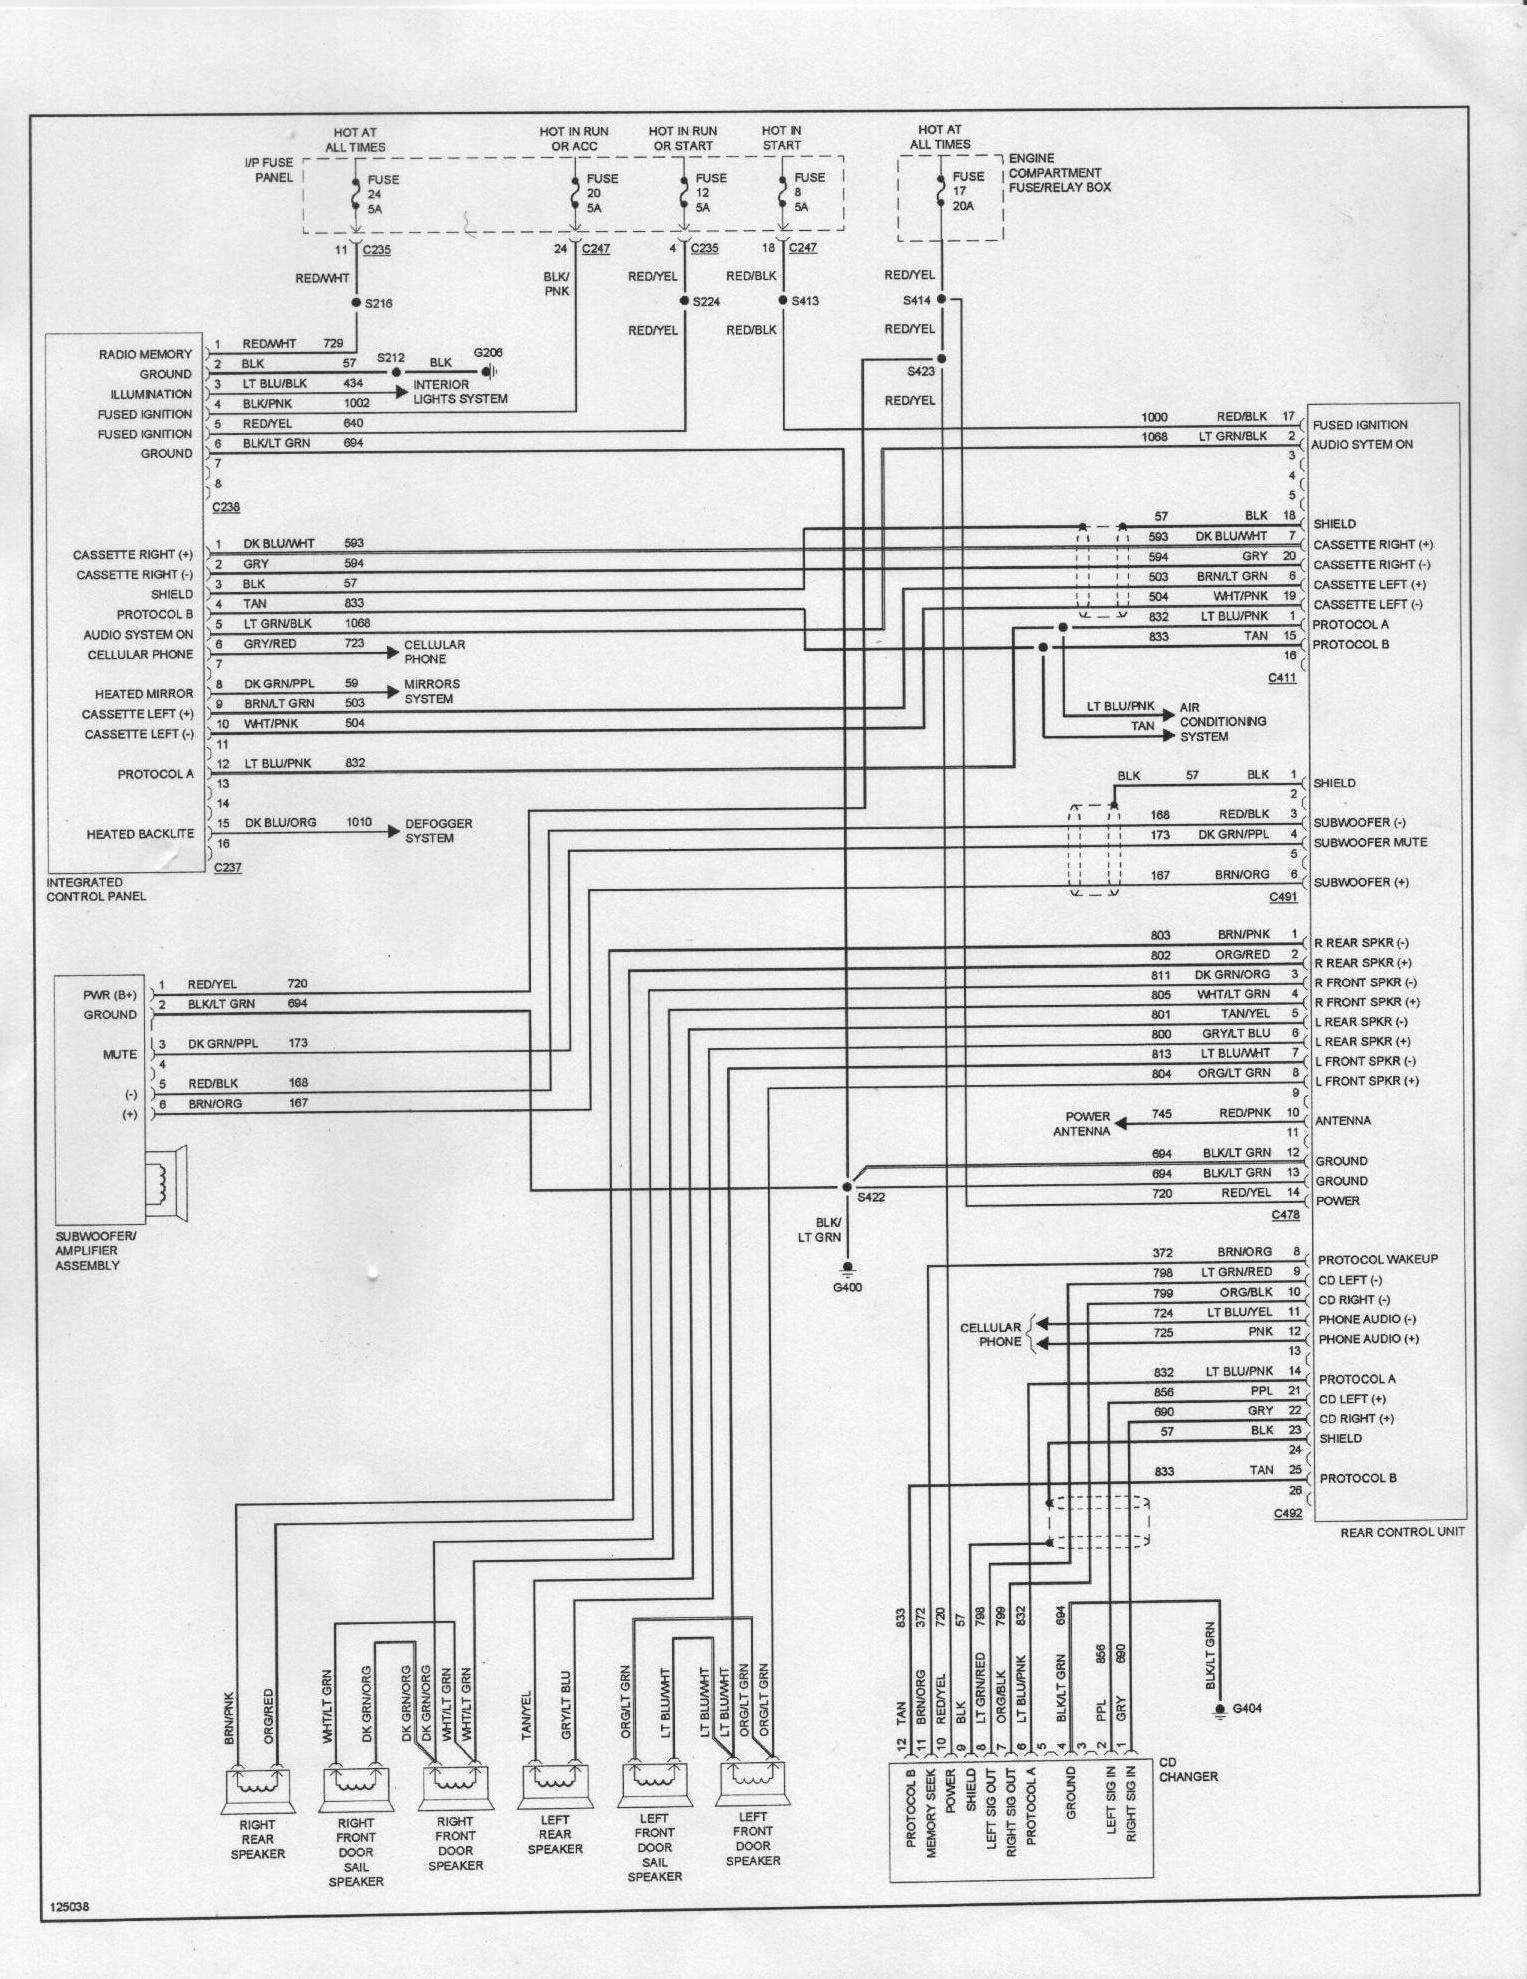 44917d1173064914 wiring diagram ford taurus diagram96 2006 ford taurus wiring diagram wiring diagram 2006 ford taurus 2007 ford 500 wiring diagram at fashall.co